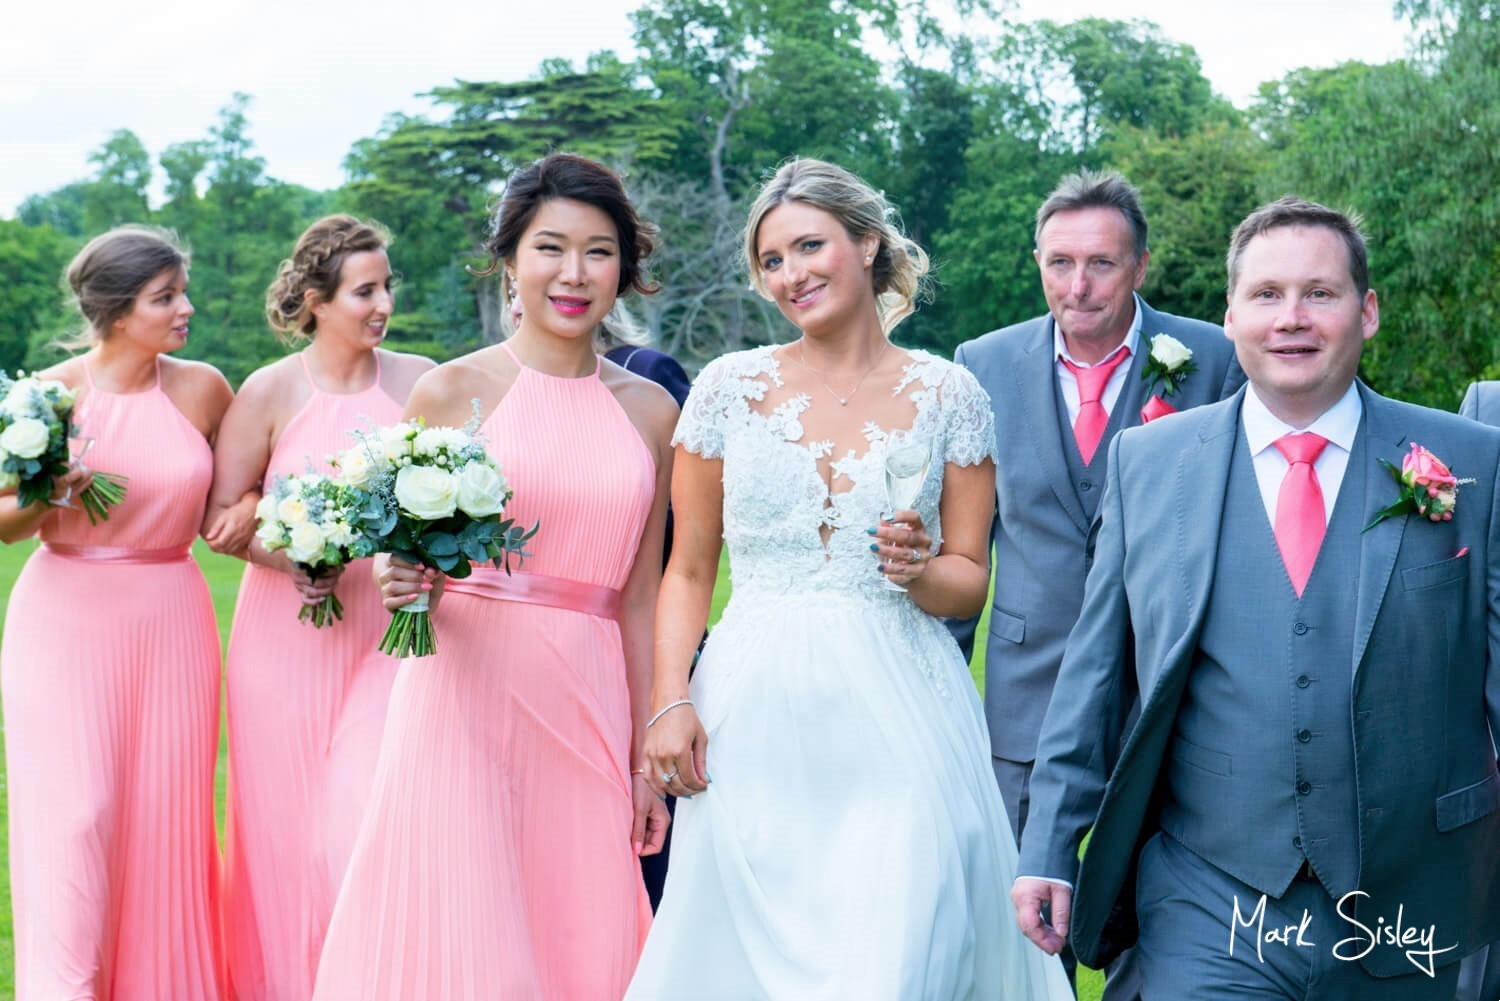 Hartwell House wedding pictures - the bridal party take a stroll